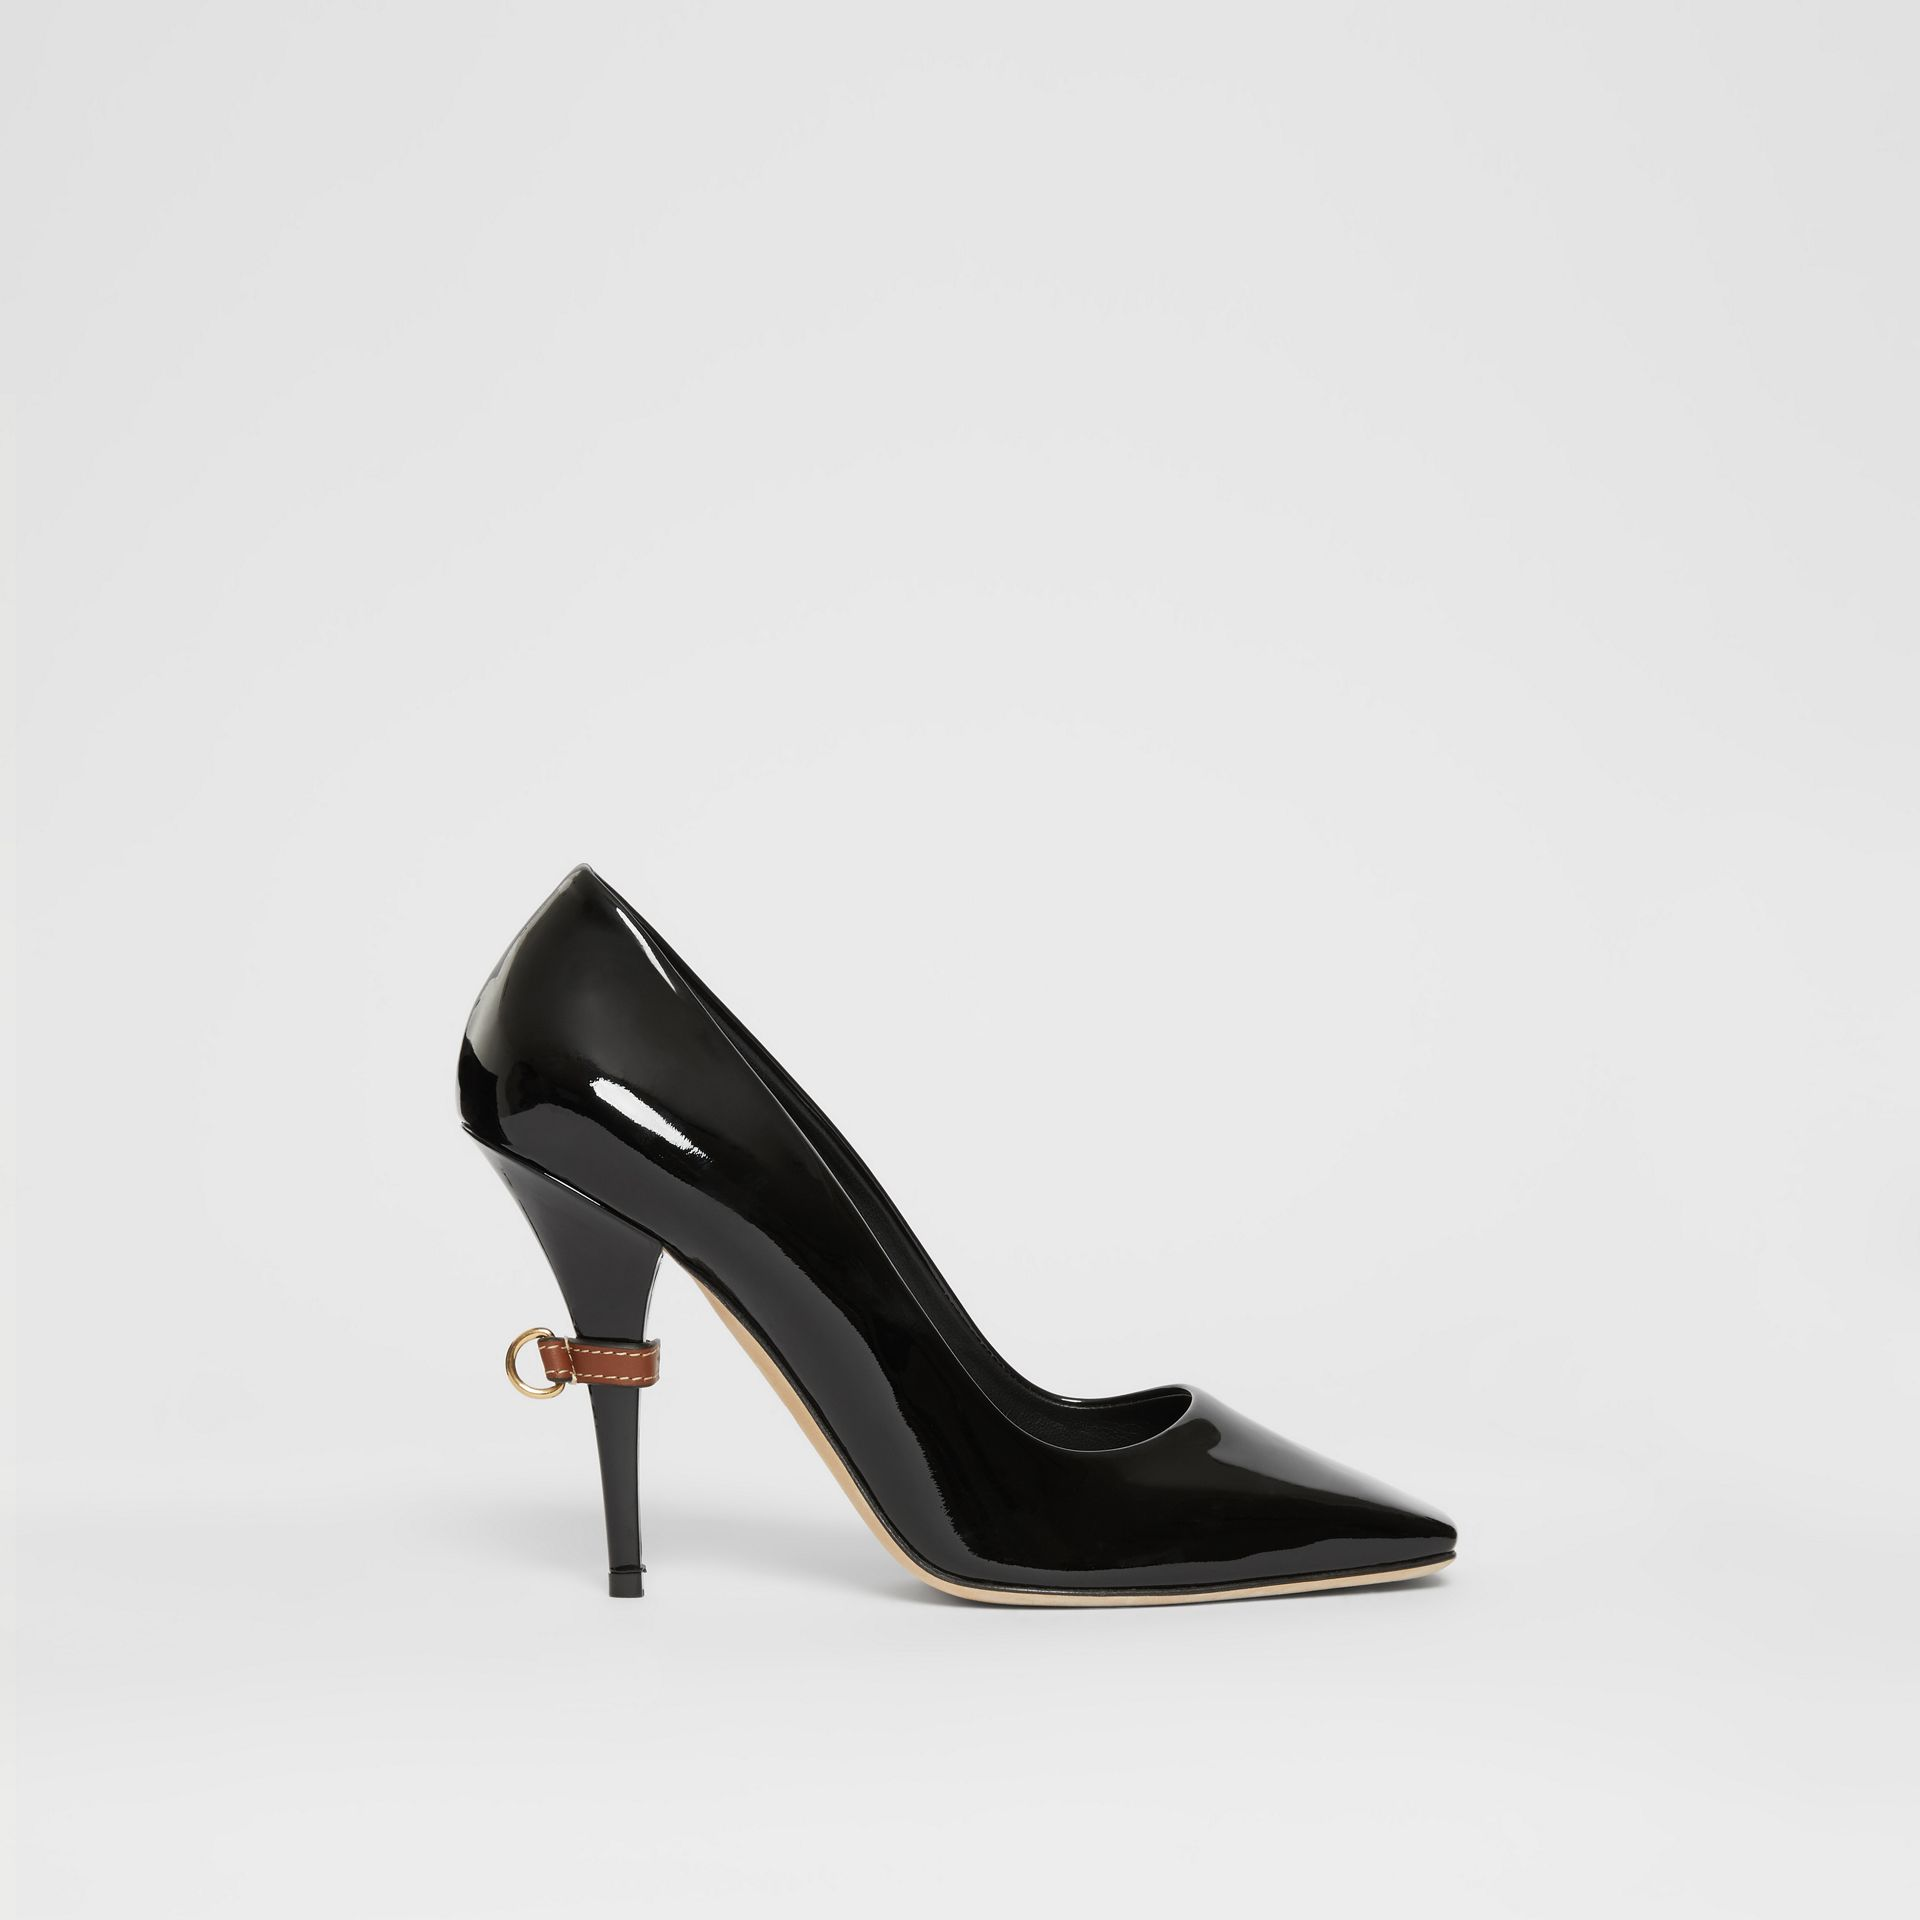 D-ring Detail Patent Leather Square-toe Pumps in Black - Women | Burberry United Kingdom - gallery image 5